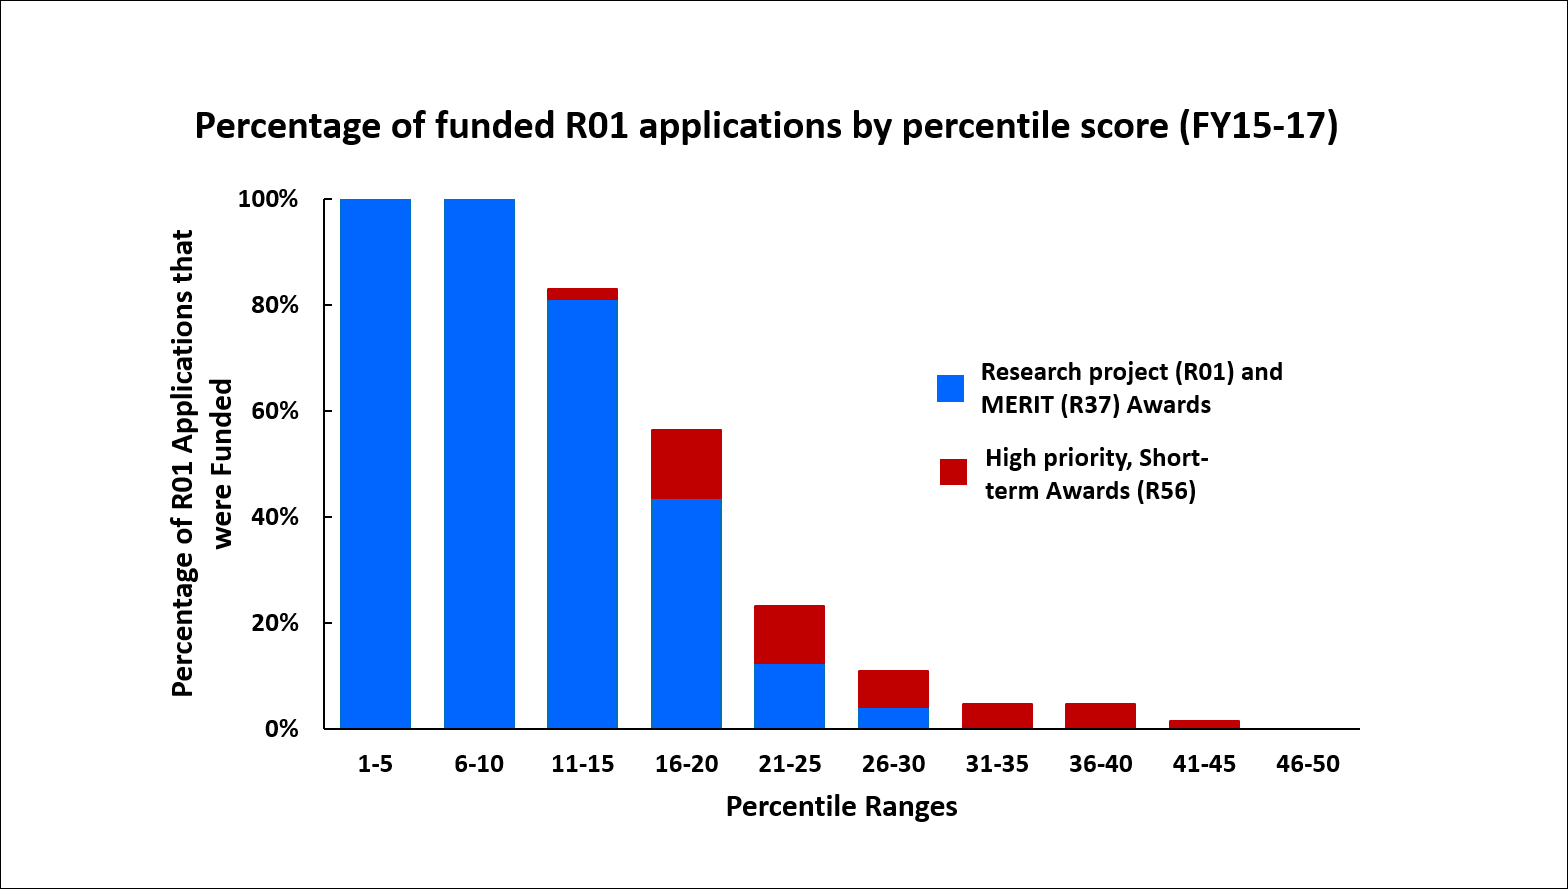 Percentage of funded R01 applications by percentile score (FY15-17)